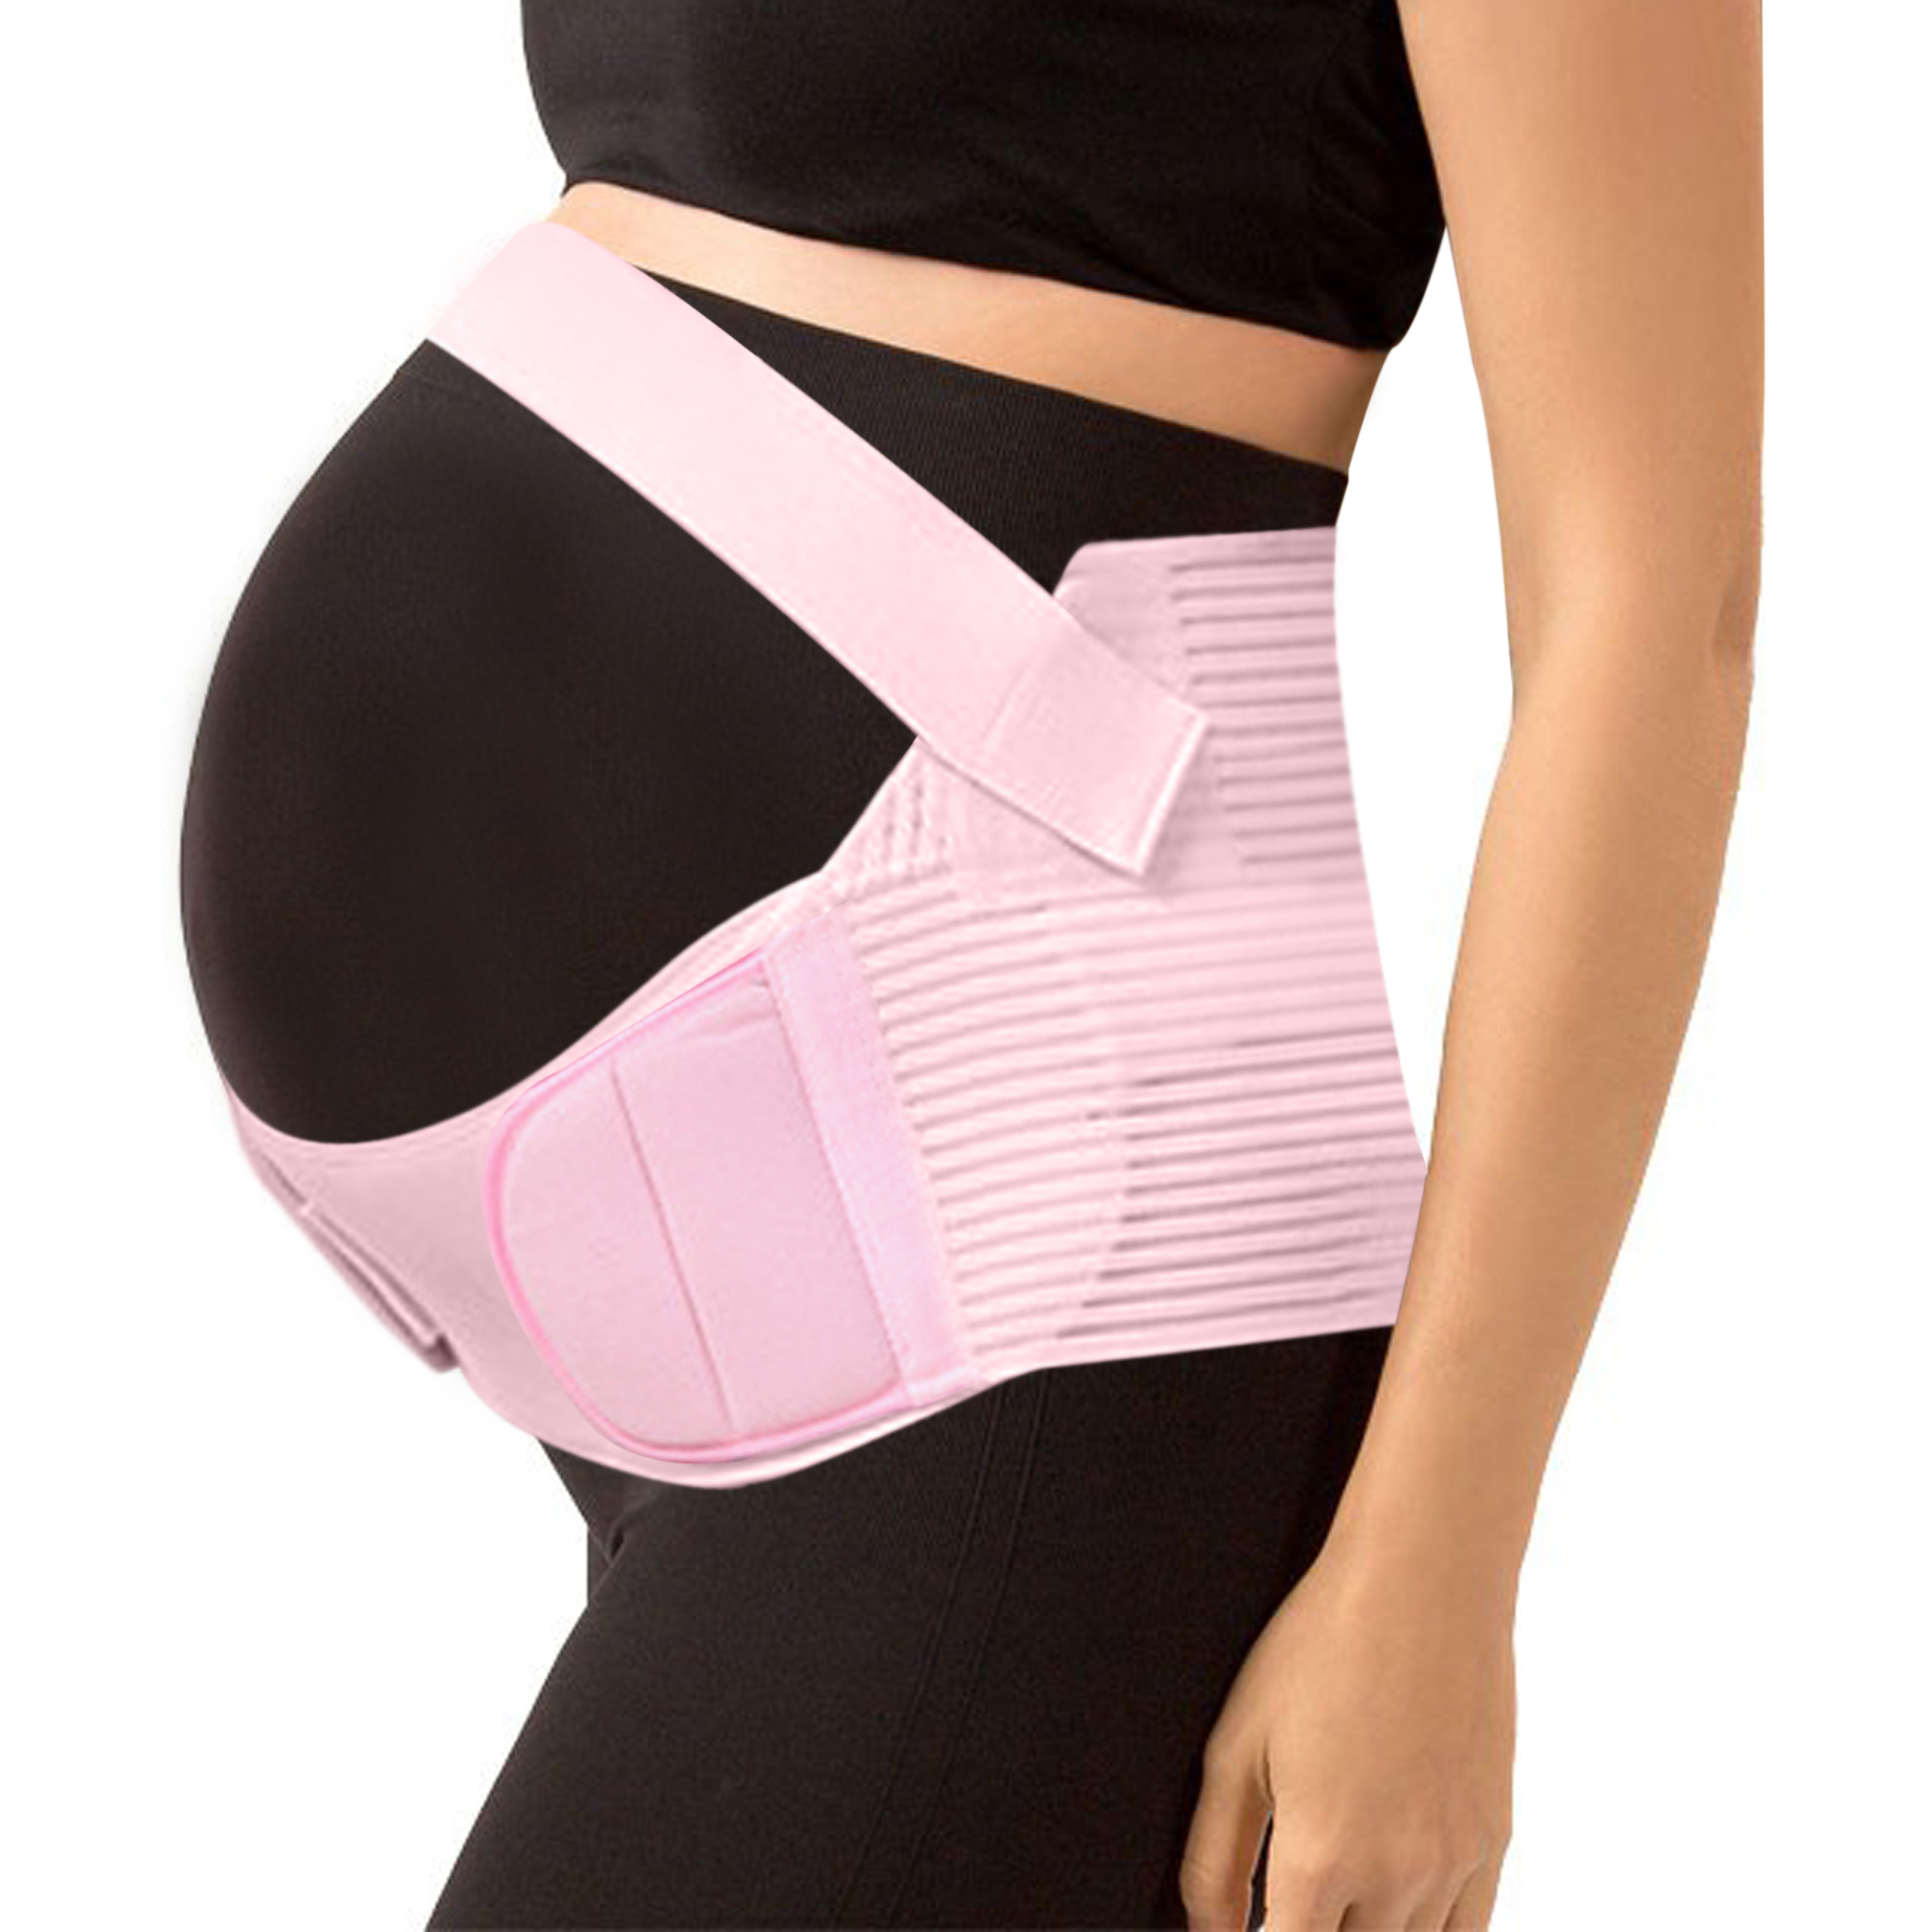 (Pink,L) Maternity Support Belt Pregnancy Belly Band Antepartum Abdominal Back Support